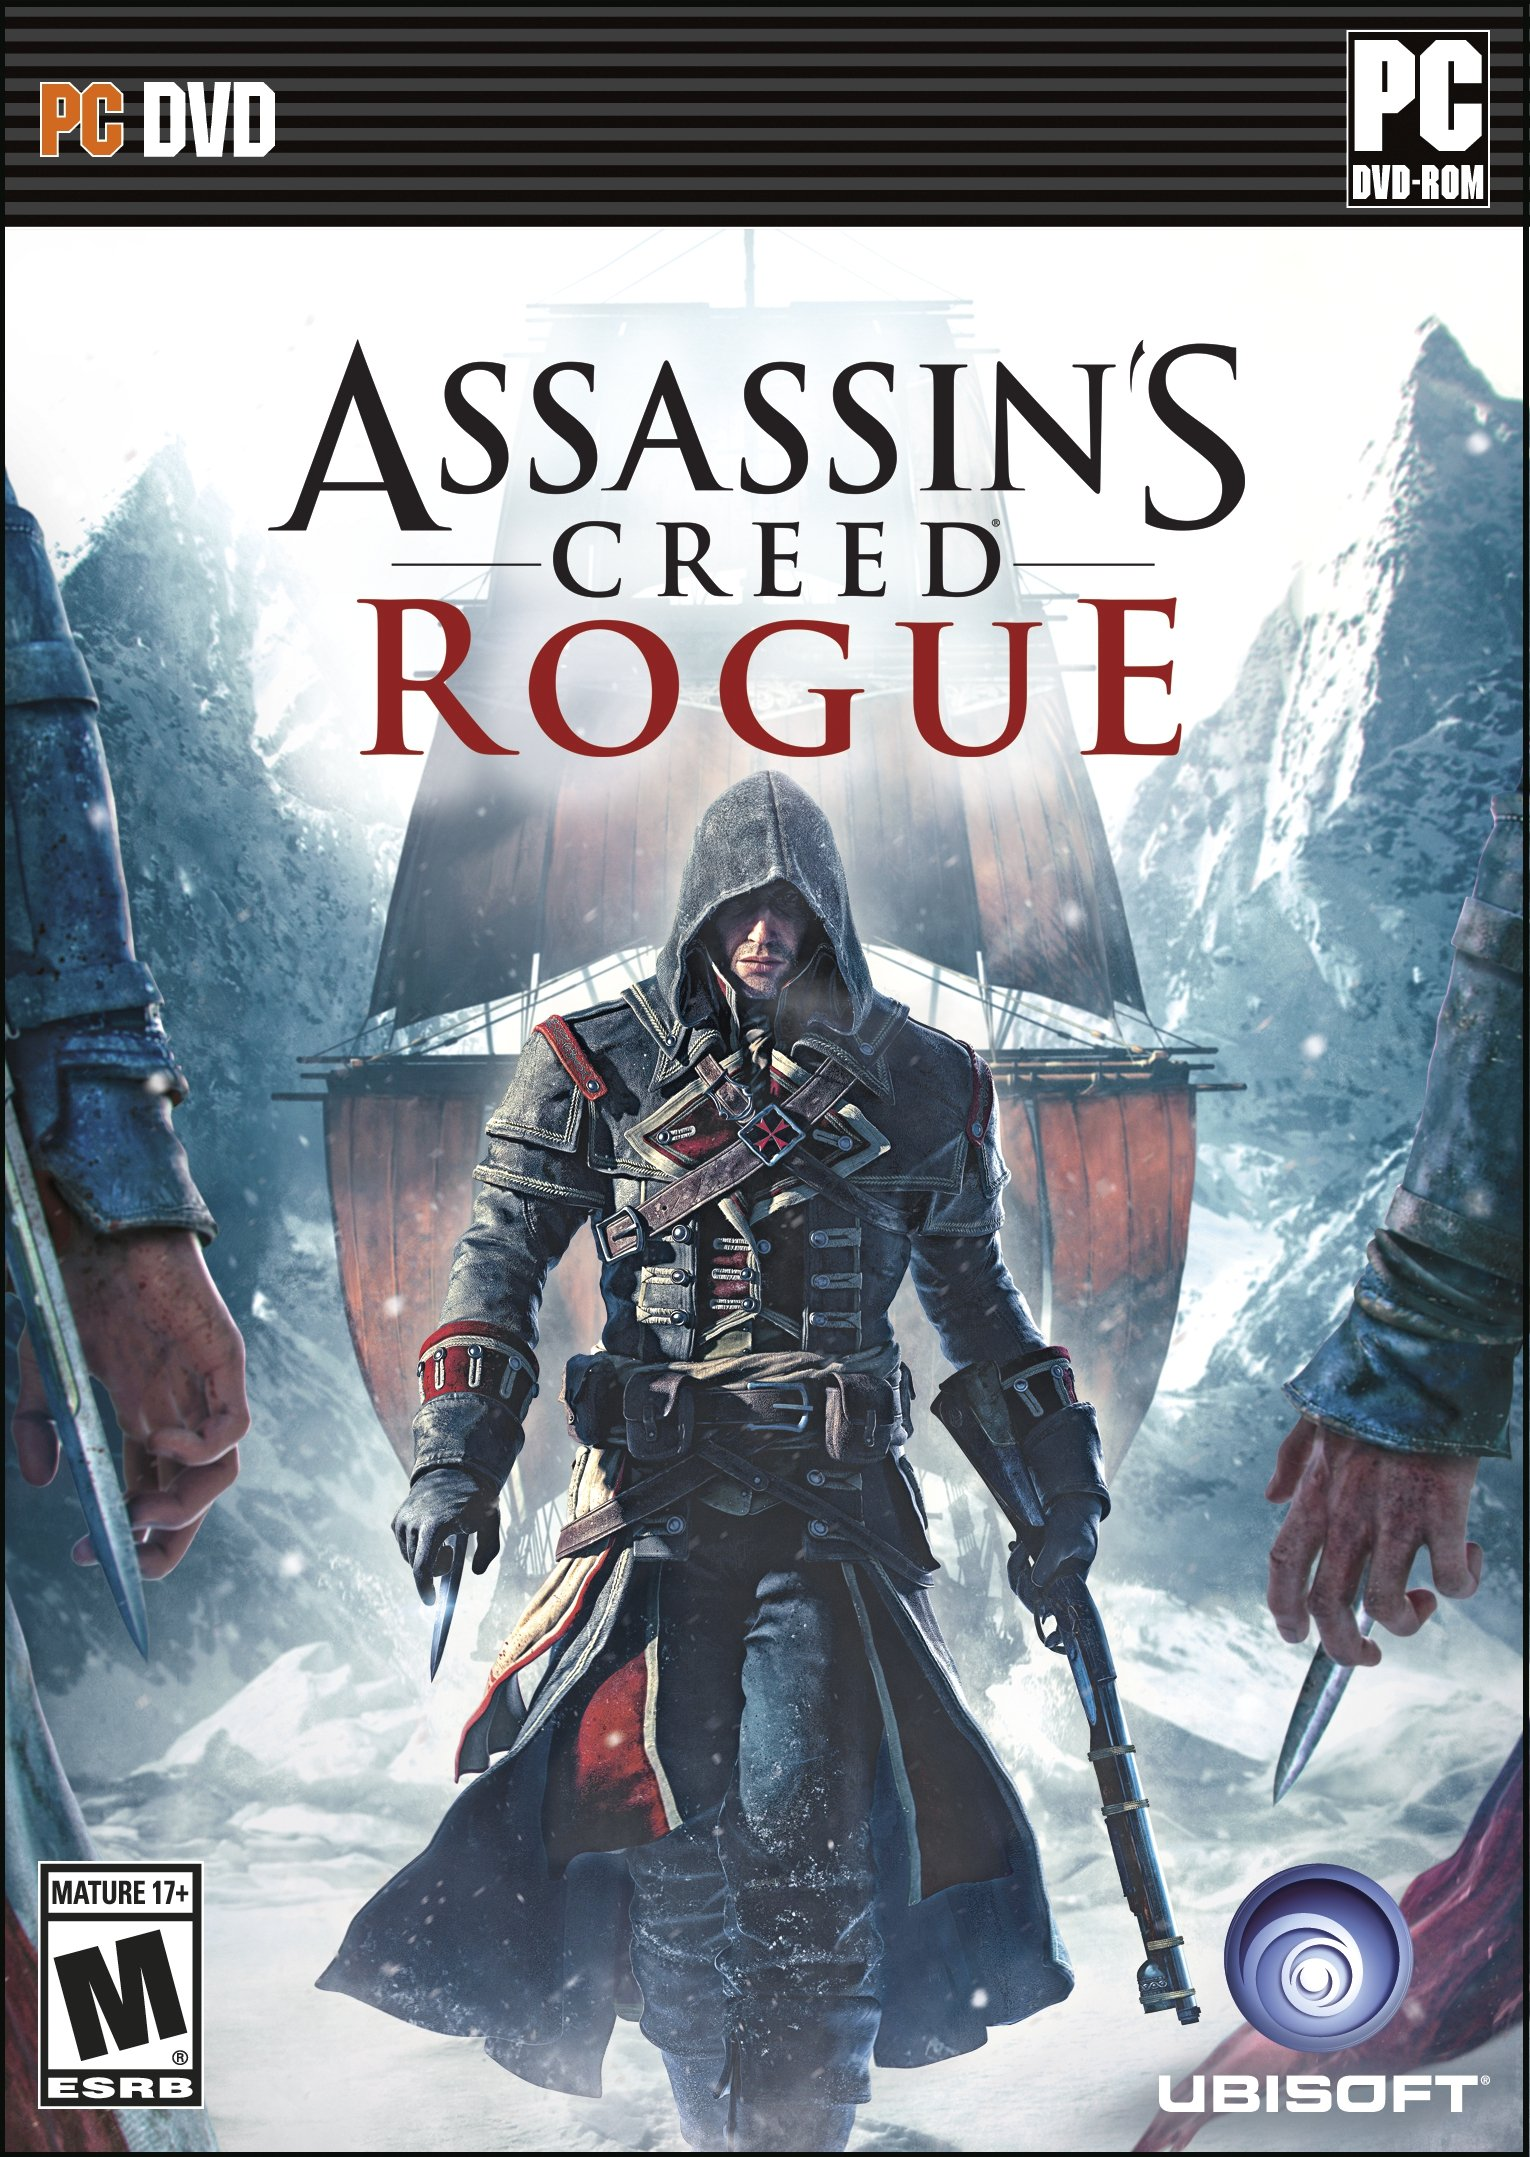 Assassin's Creed Rogue Release Date (PC, Xbox 360, PS3)